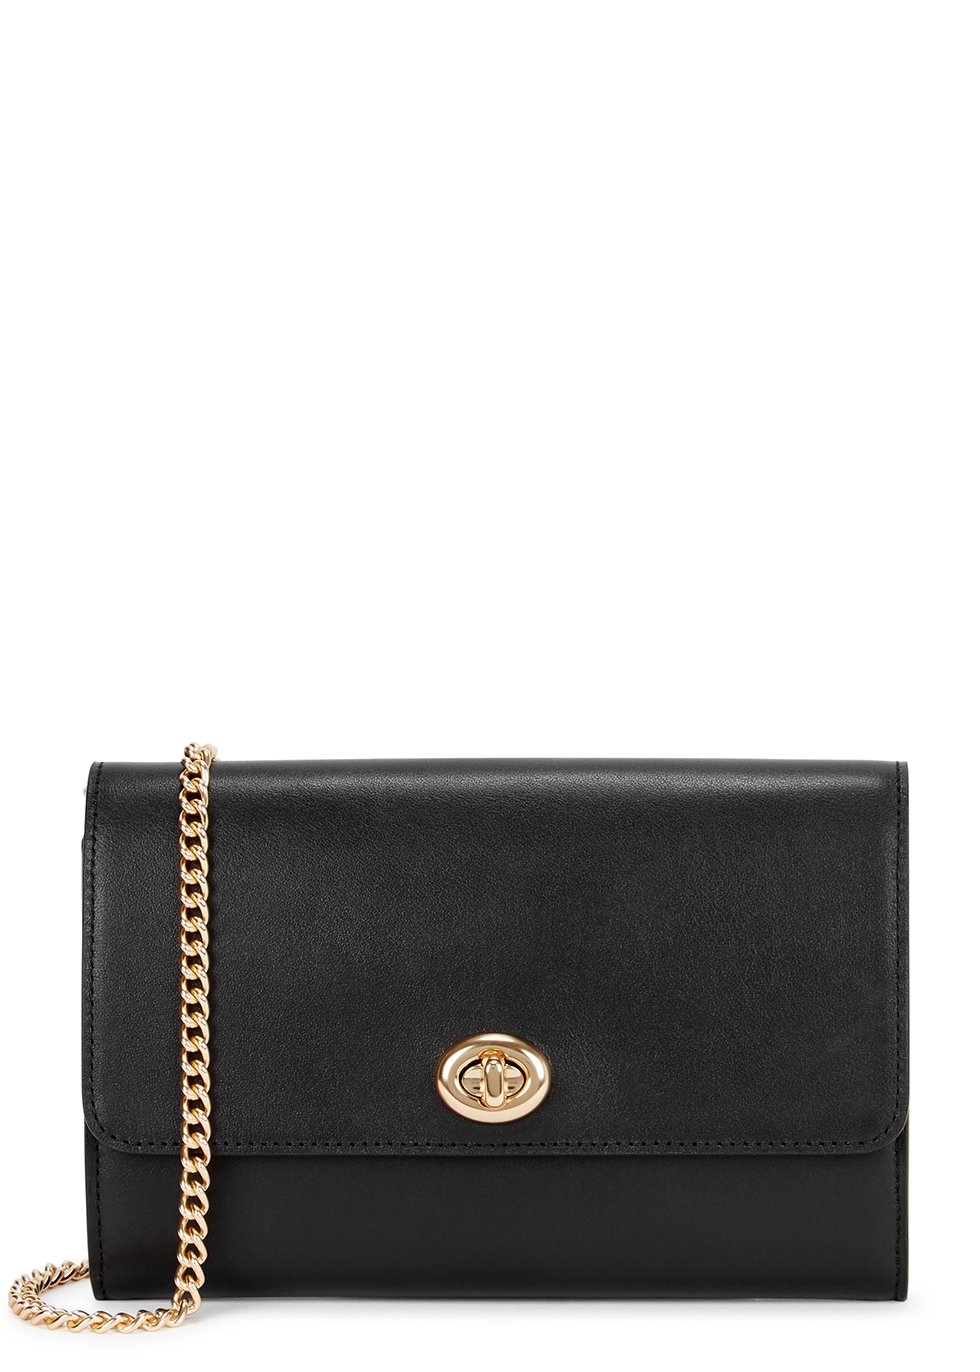 Marlow black leather cross-body bag - Coach